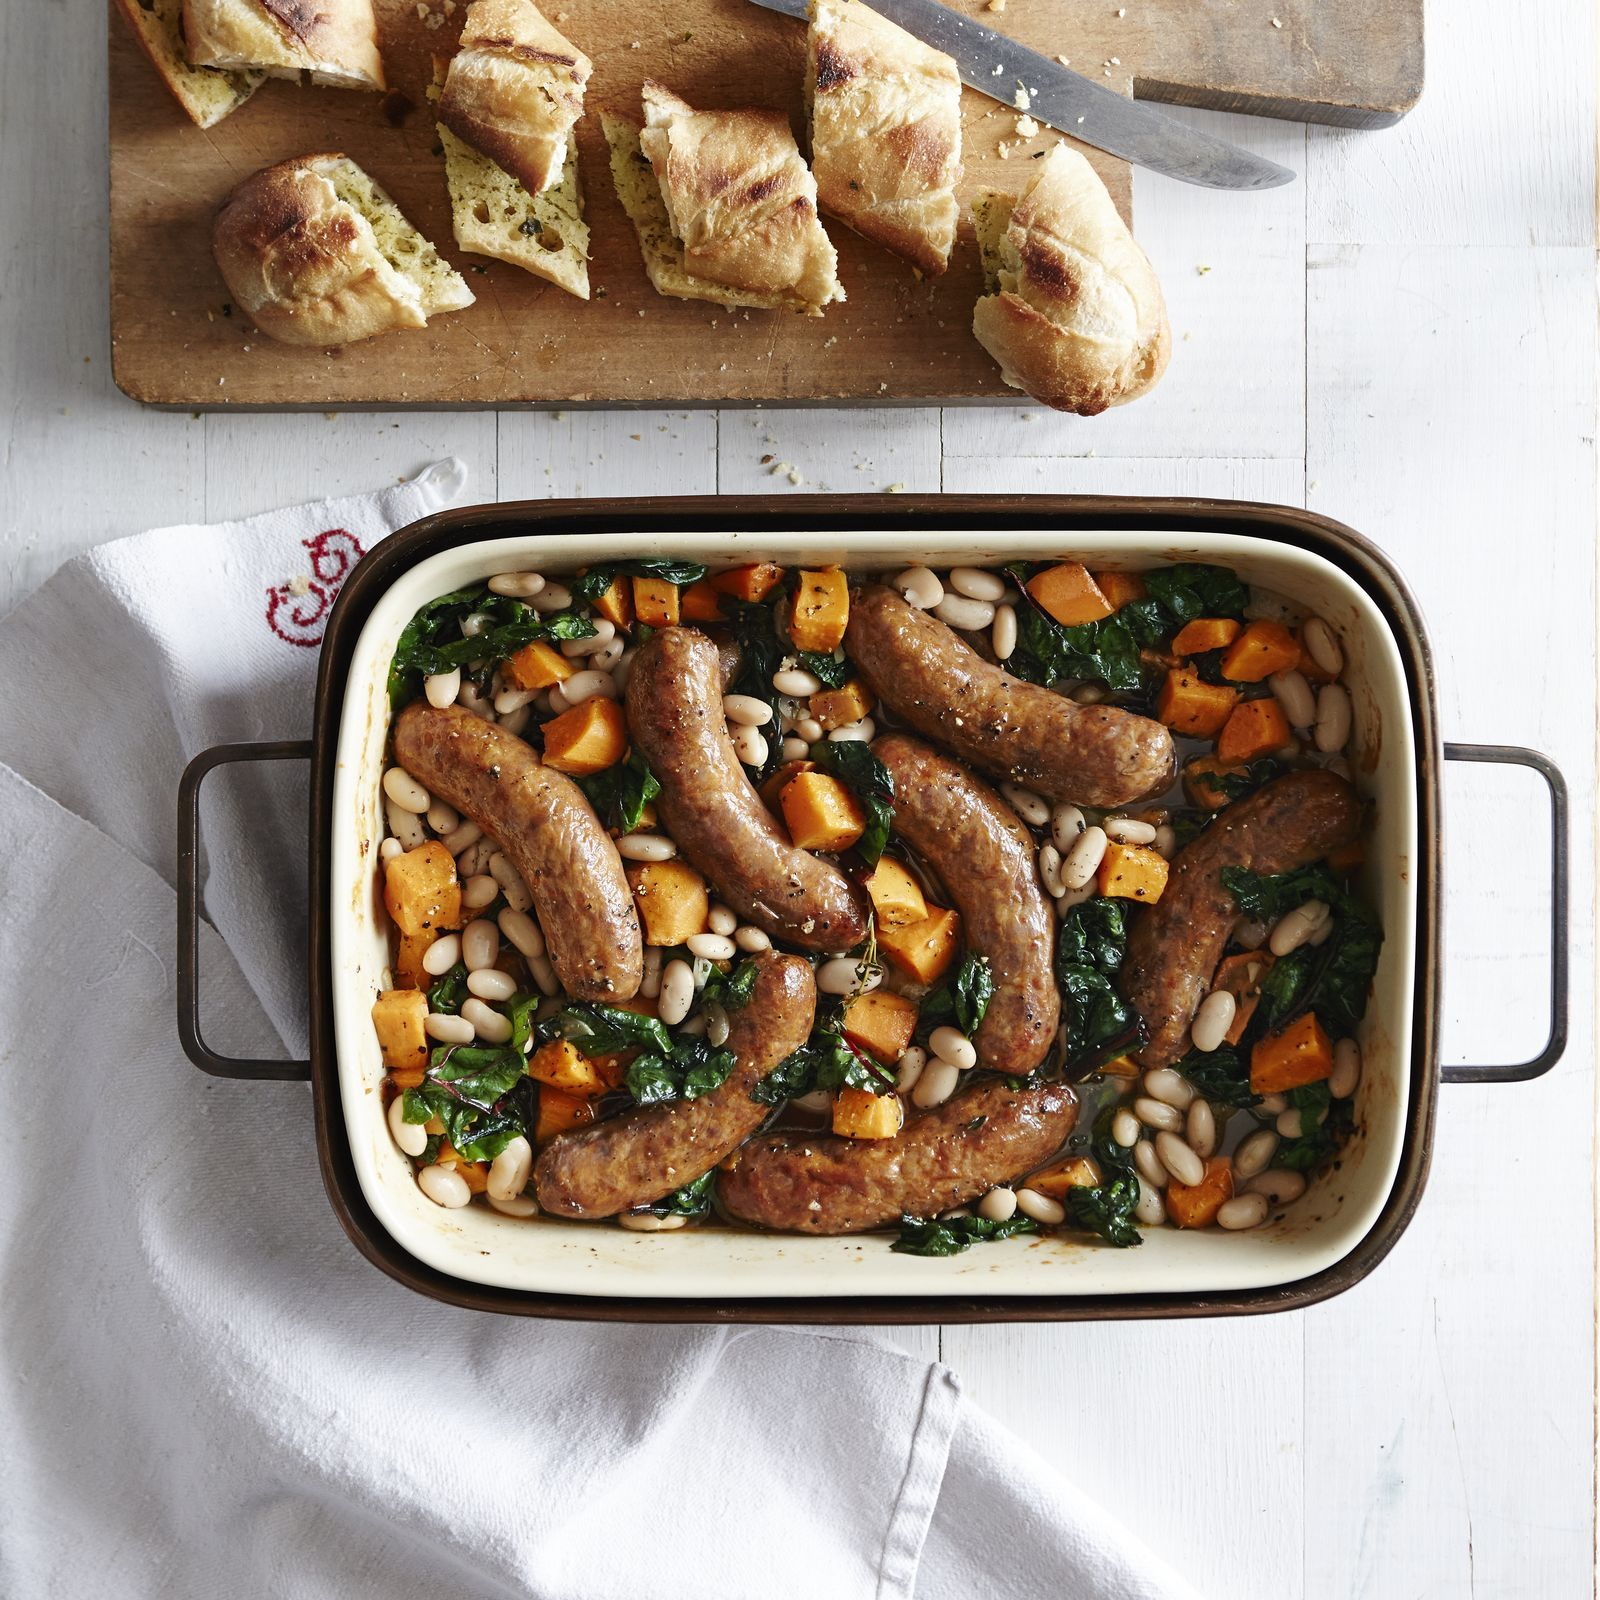 Roasted Sausages and Sweet Potato-White Bean Stew